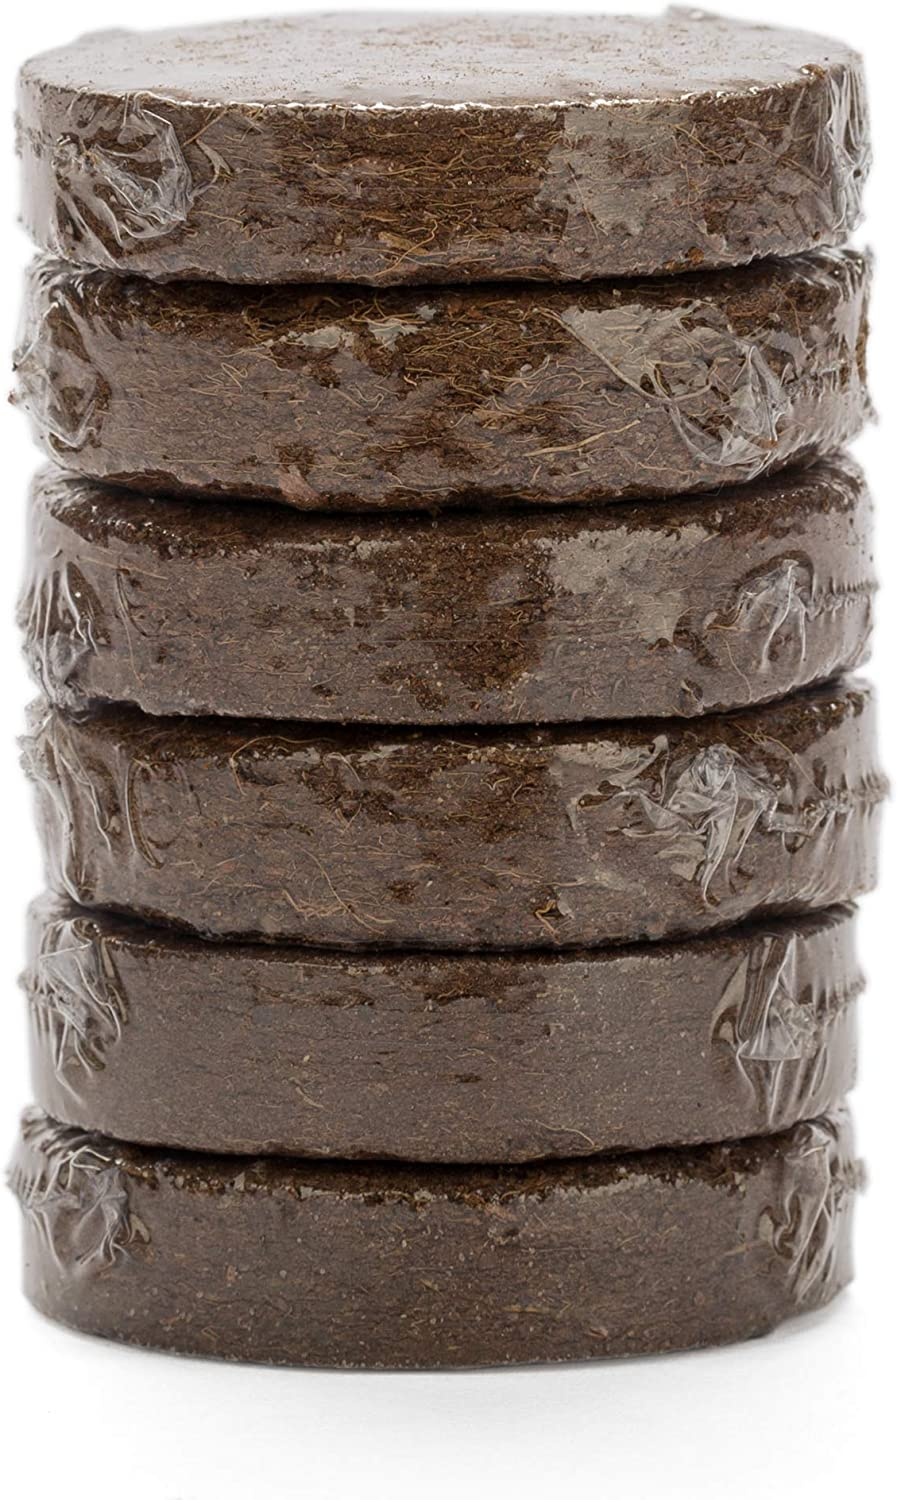 Organic Soil for Indoor/Outdoor Plants, Expands to Fit 3 Inch and 4 Inch Pots - 6 Pack